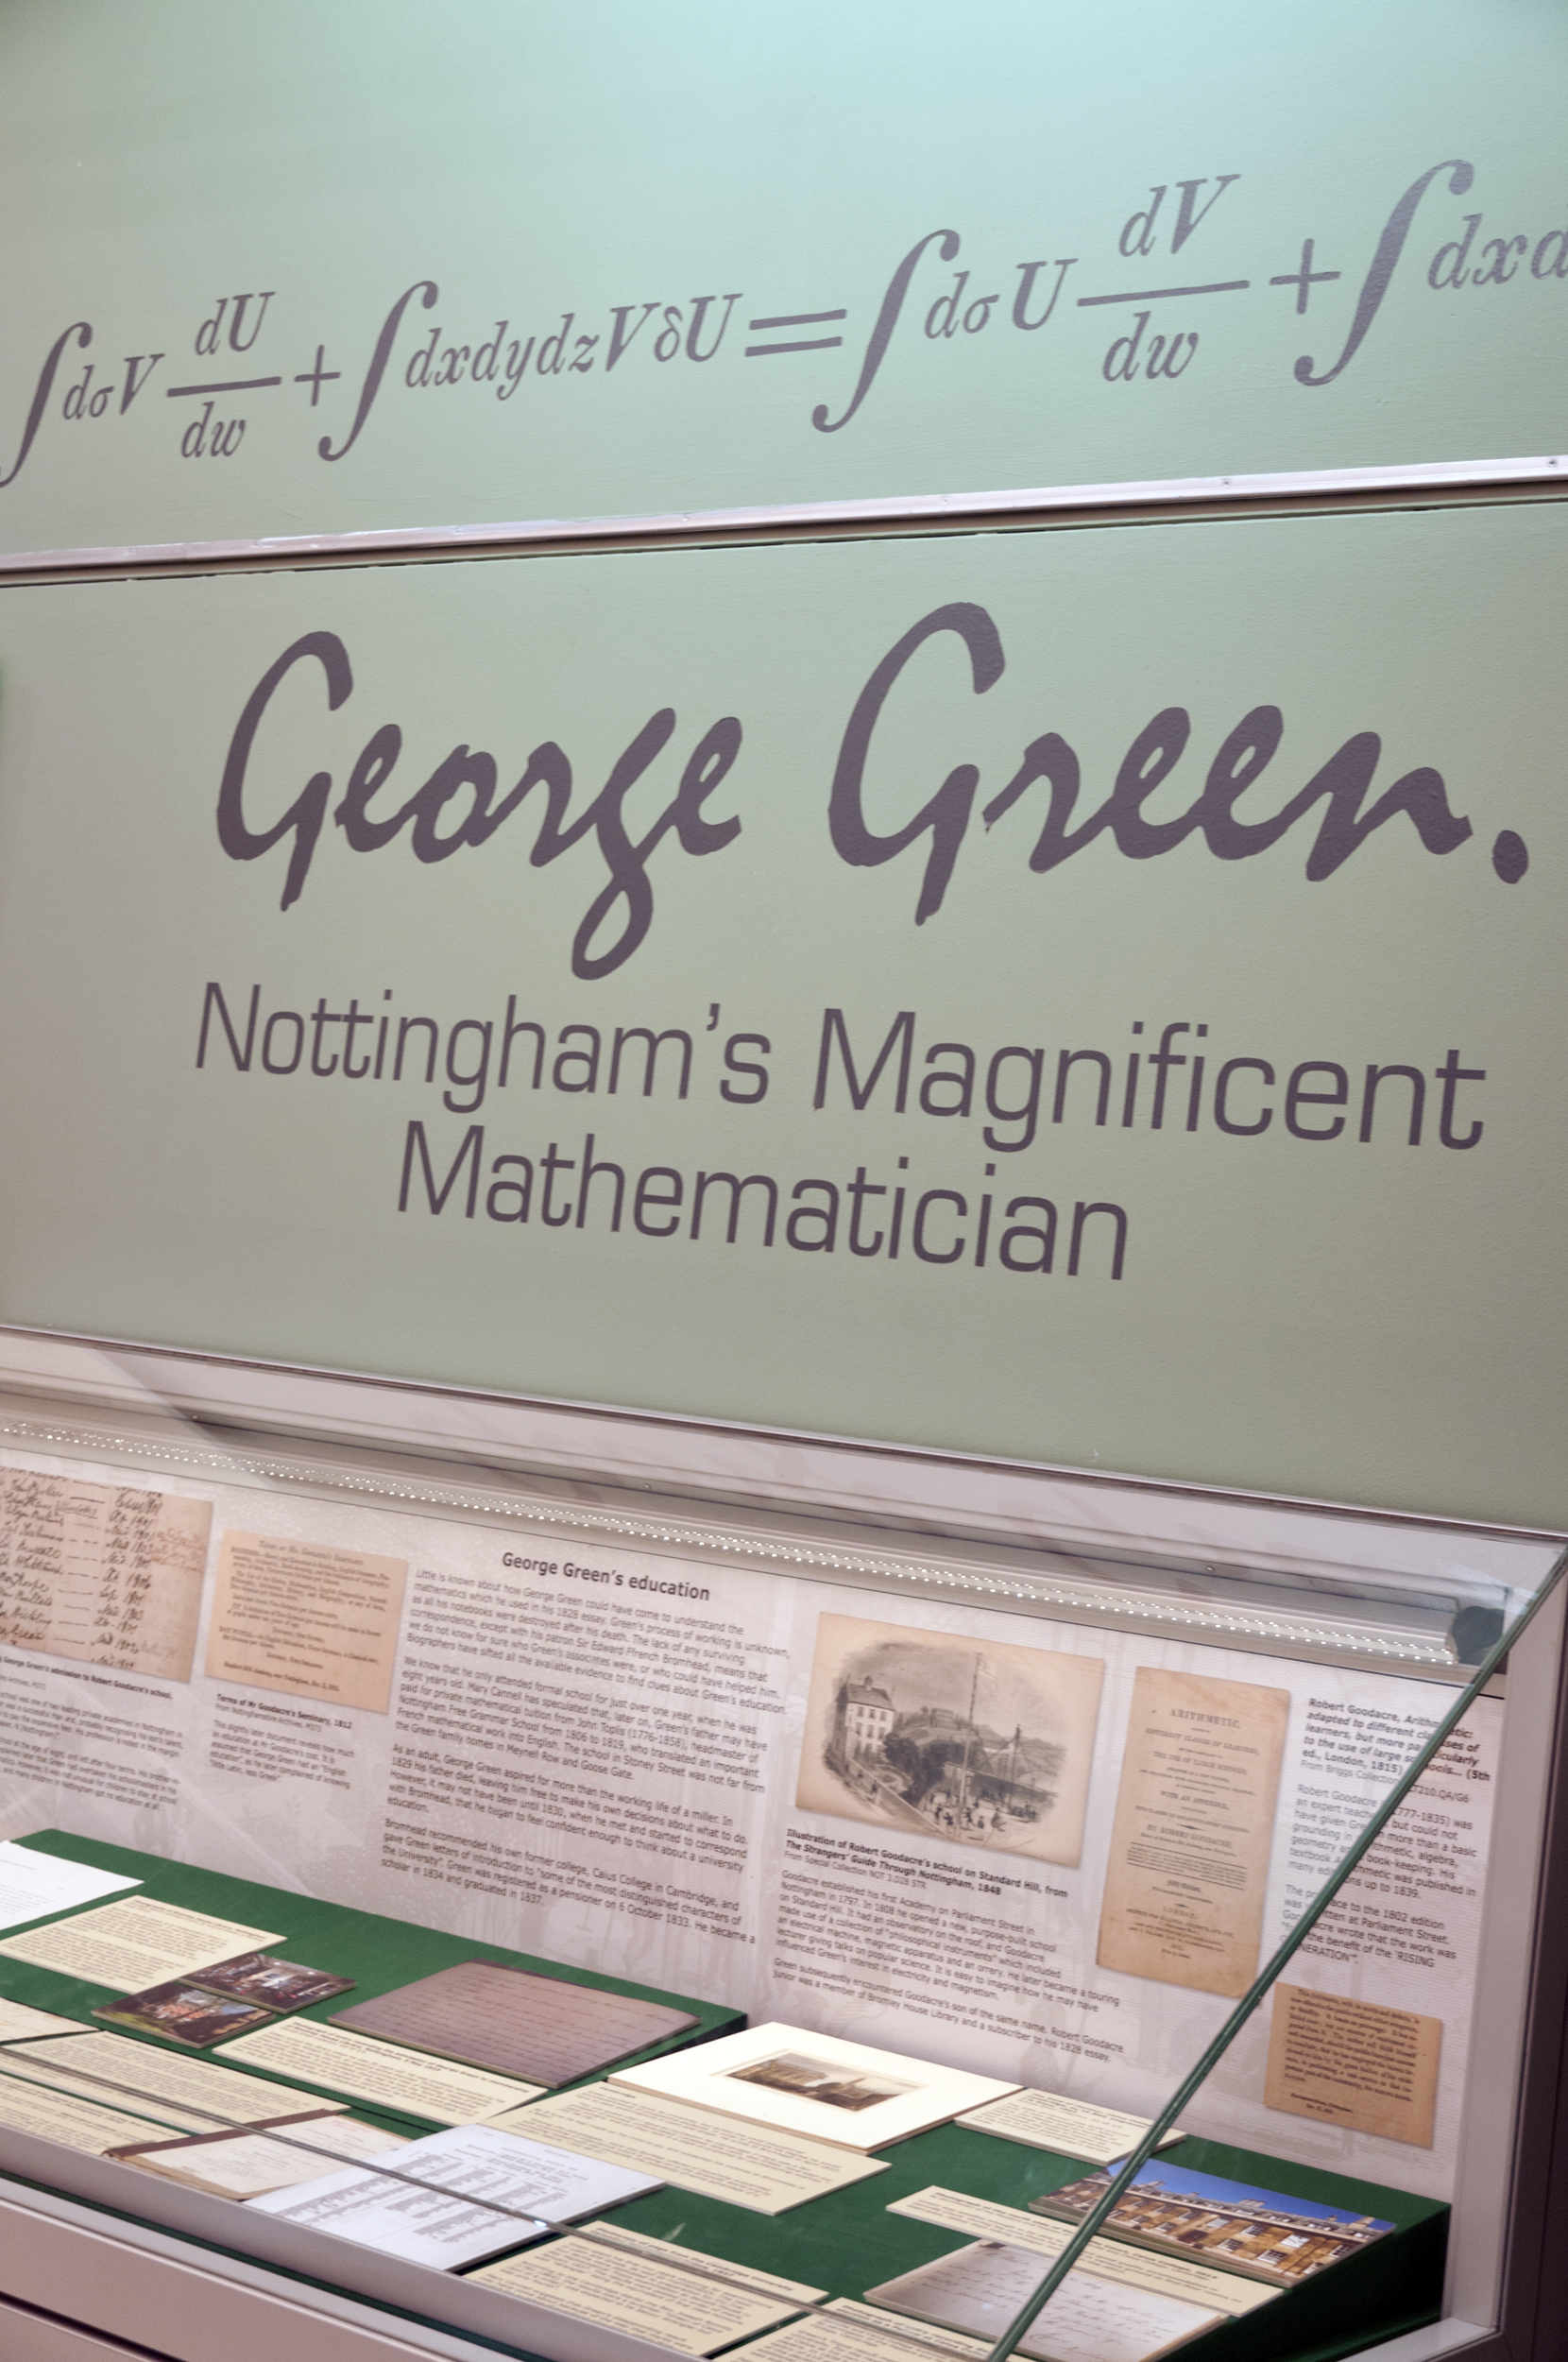 george green mathematician the social encyclopedia george green mathematician george green nottingham39s magnificent mathematician